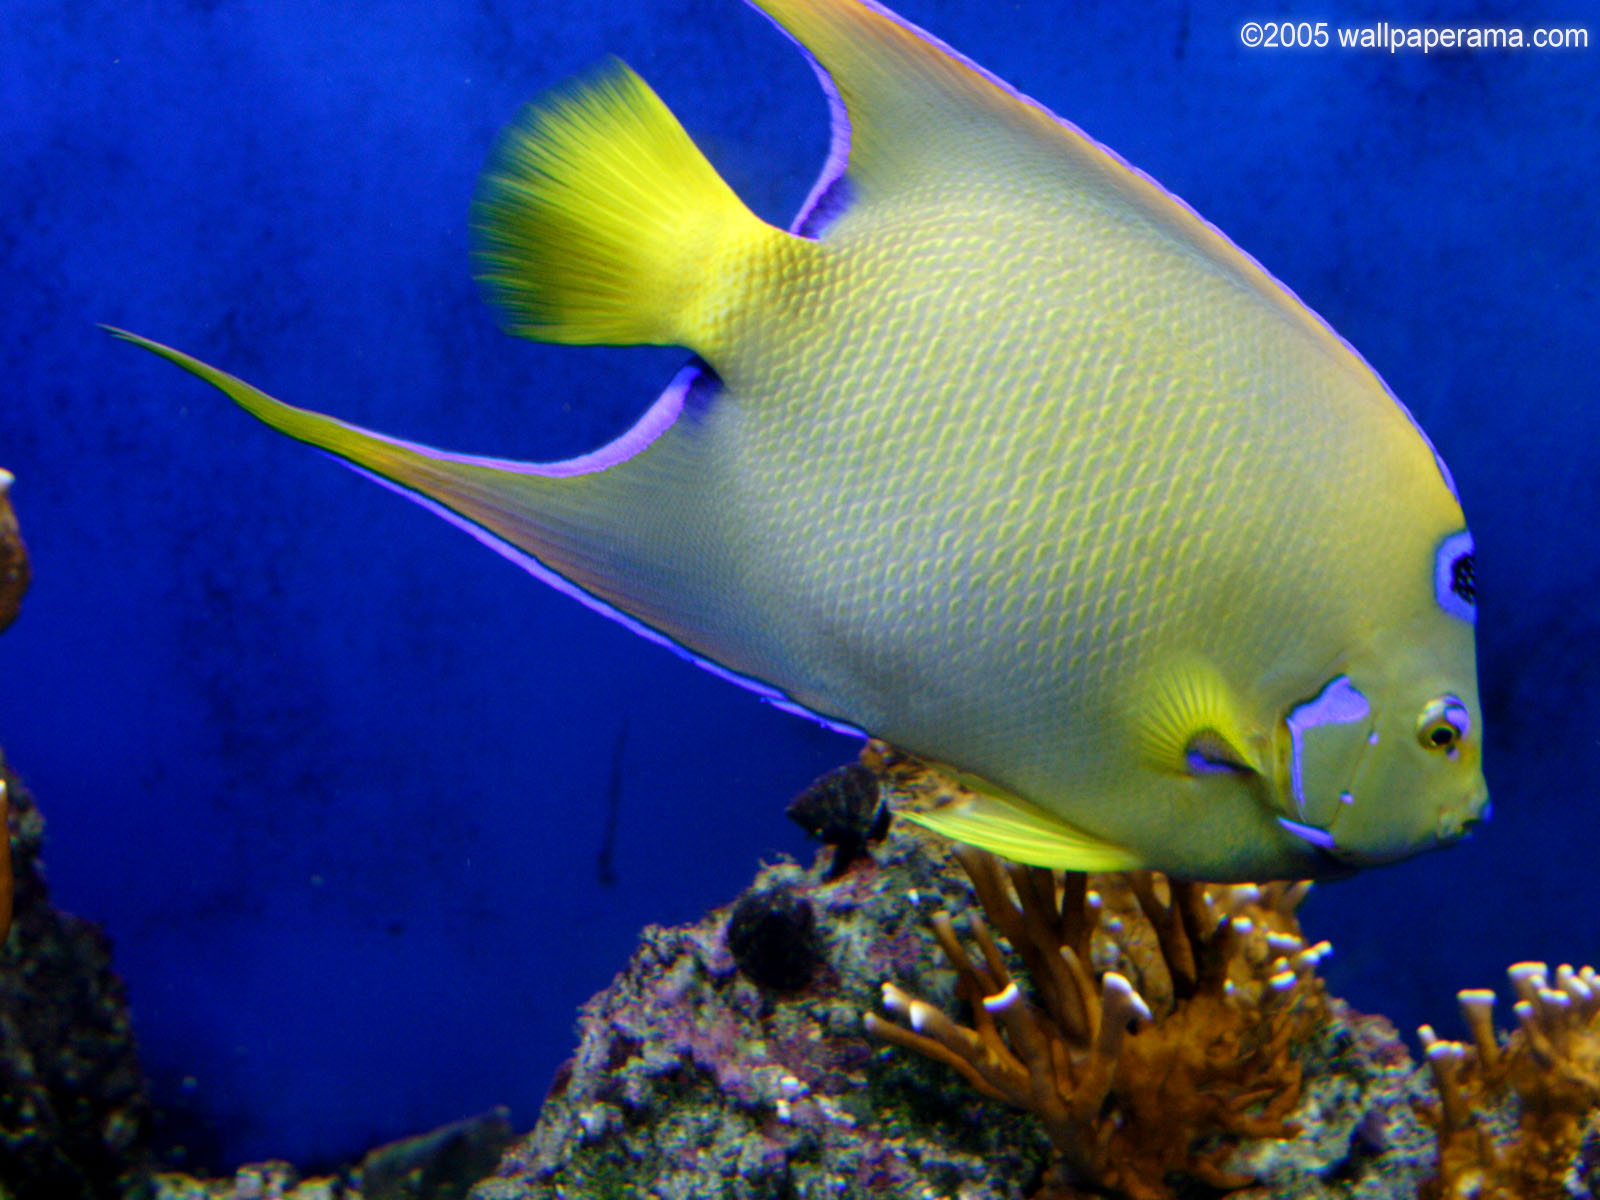 Tropical Fish Wallpaper HD Backgrounds Images Pictures 1600x1200